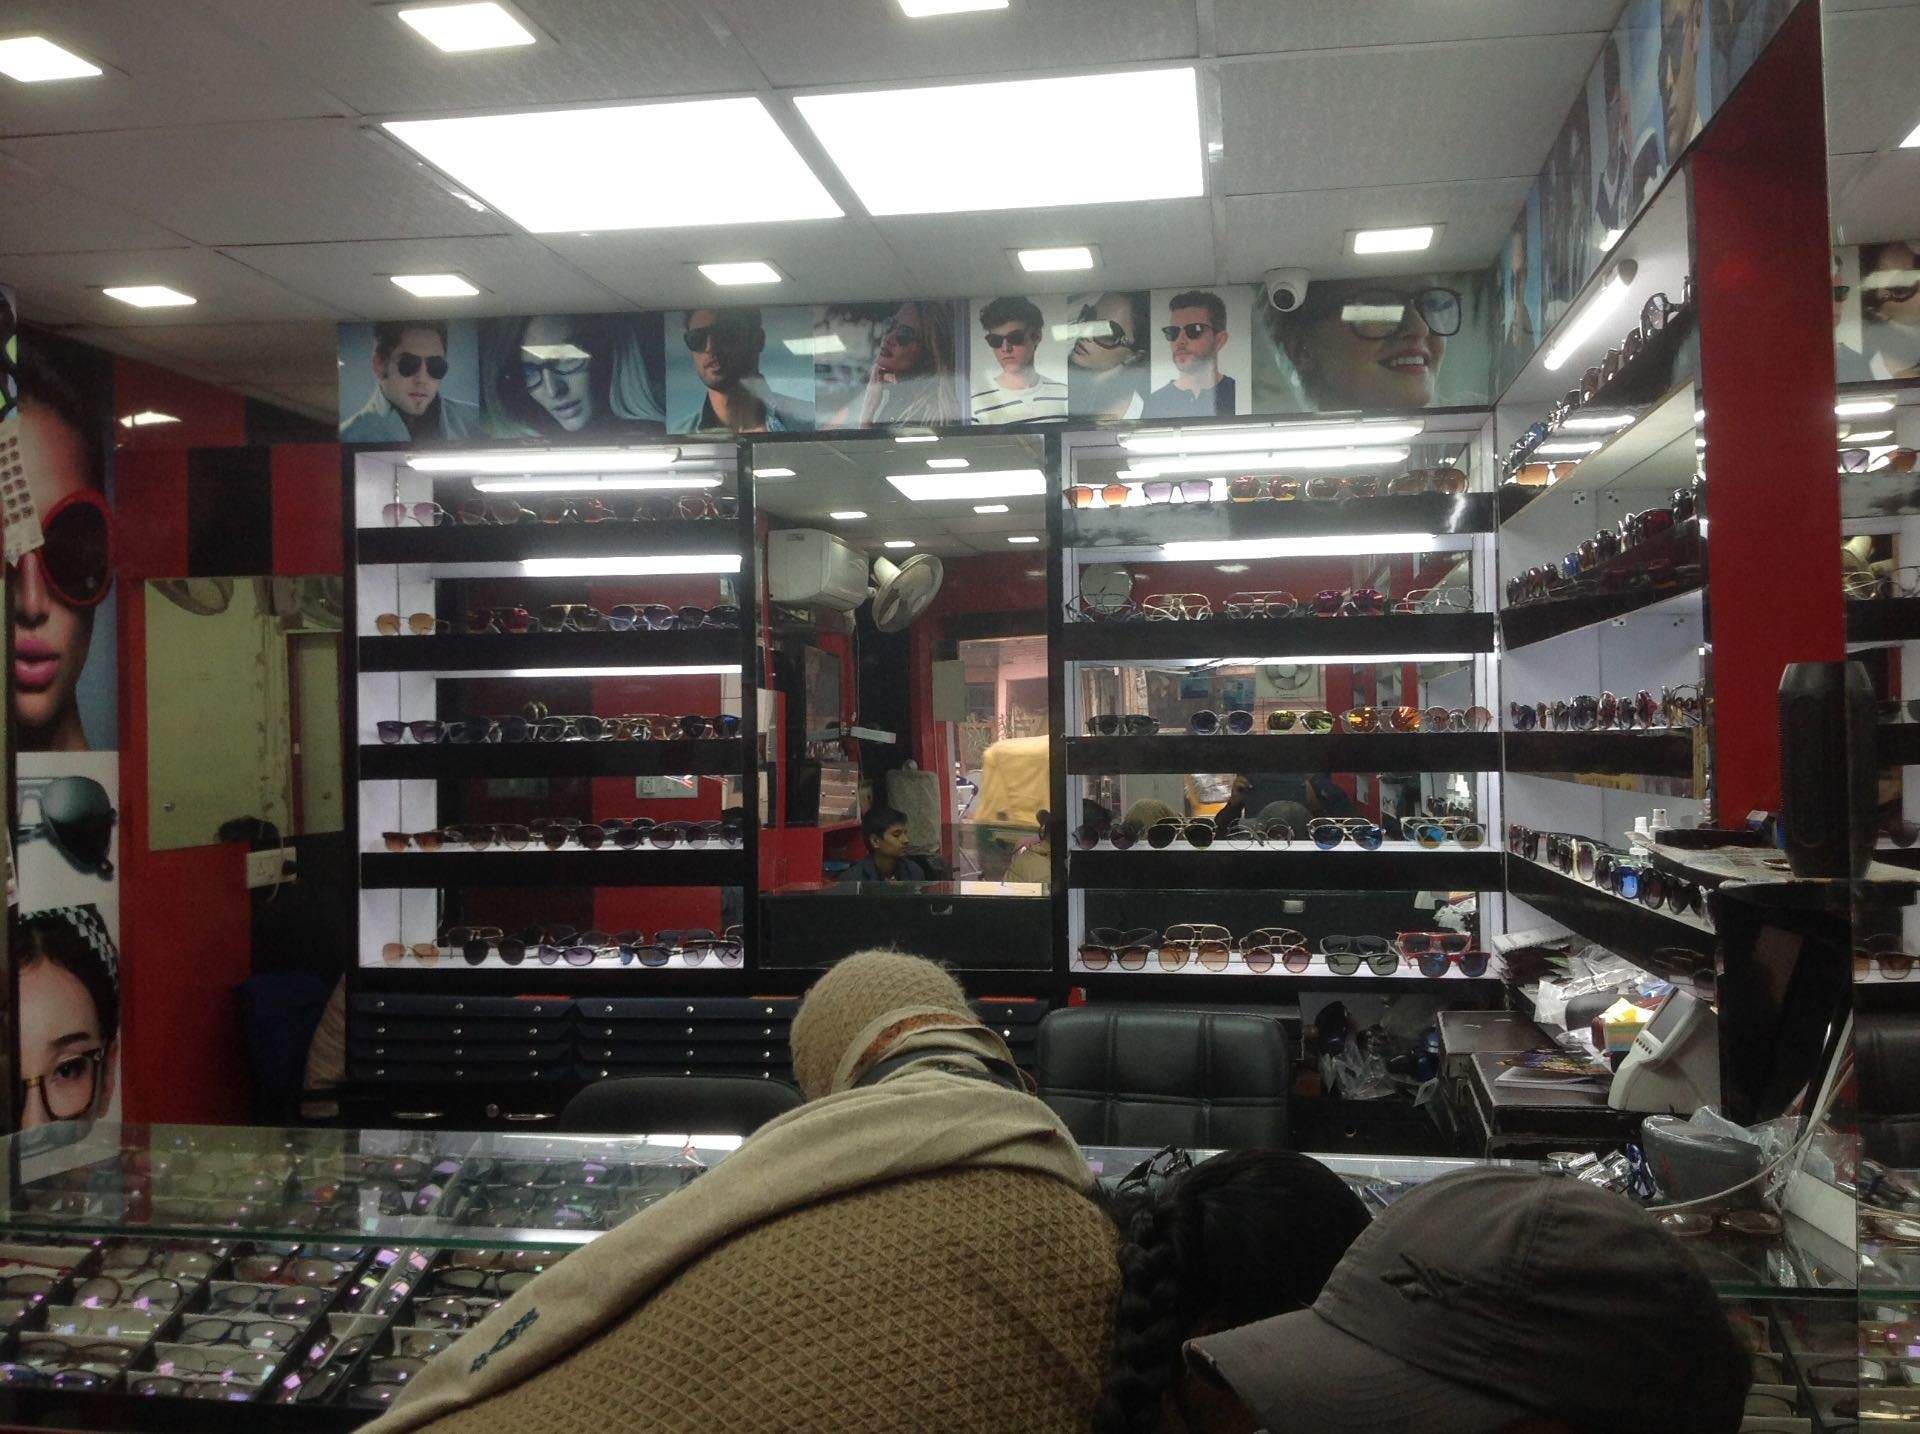 1e8f88c7de1 Top 100 Ray ban sunglass Dealers in Gurgaon Sector 29 - Best Ray ban ...